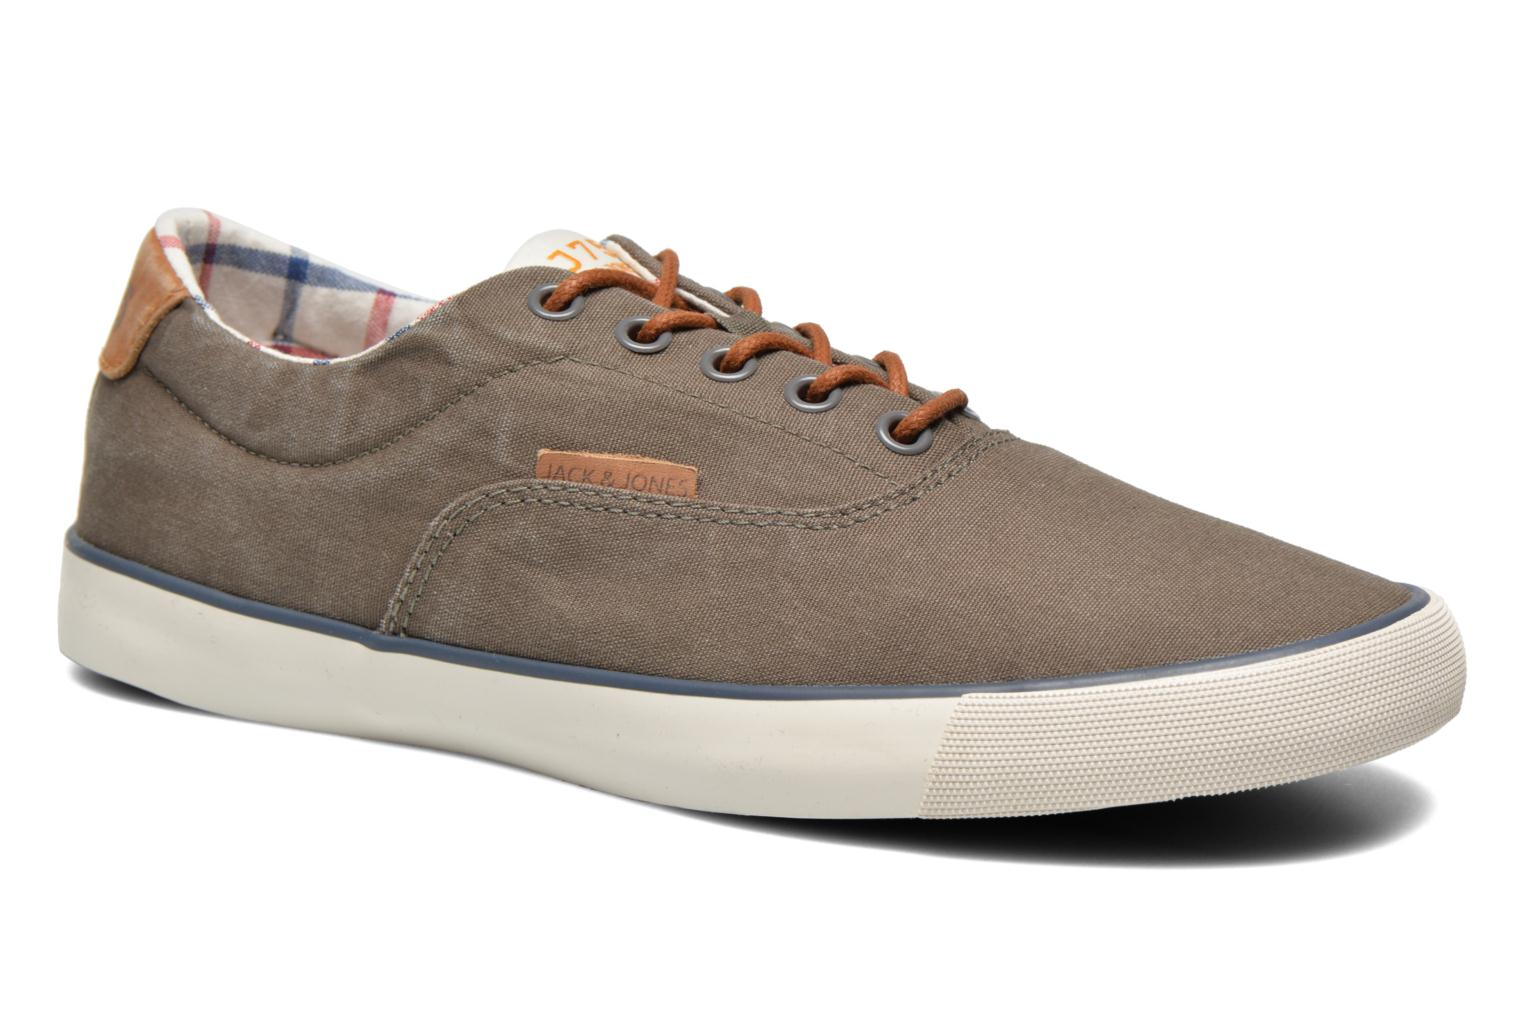 Sneakers JJ Surf Vintage by Jack & Jones